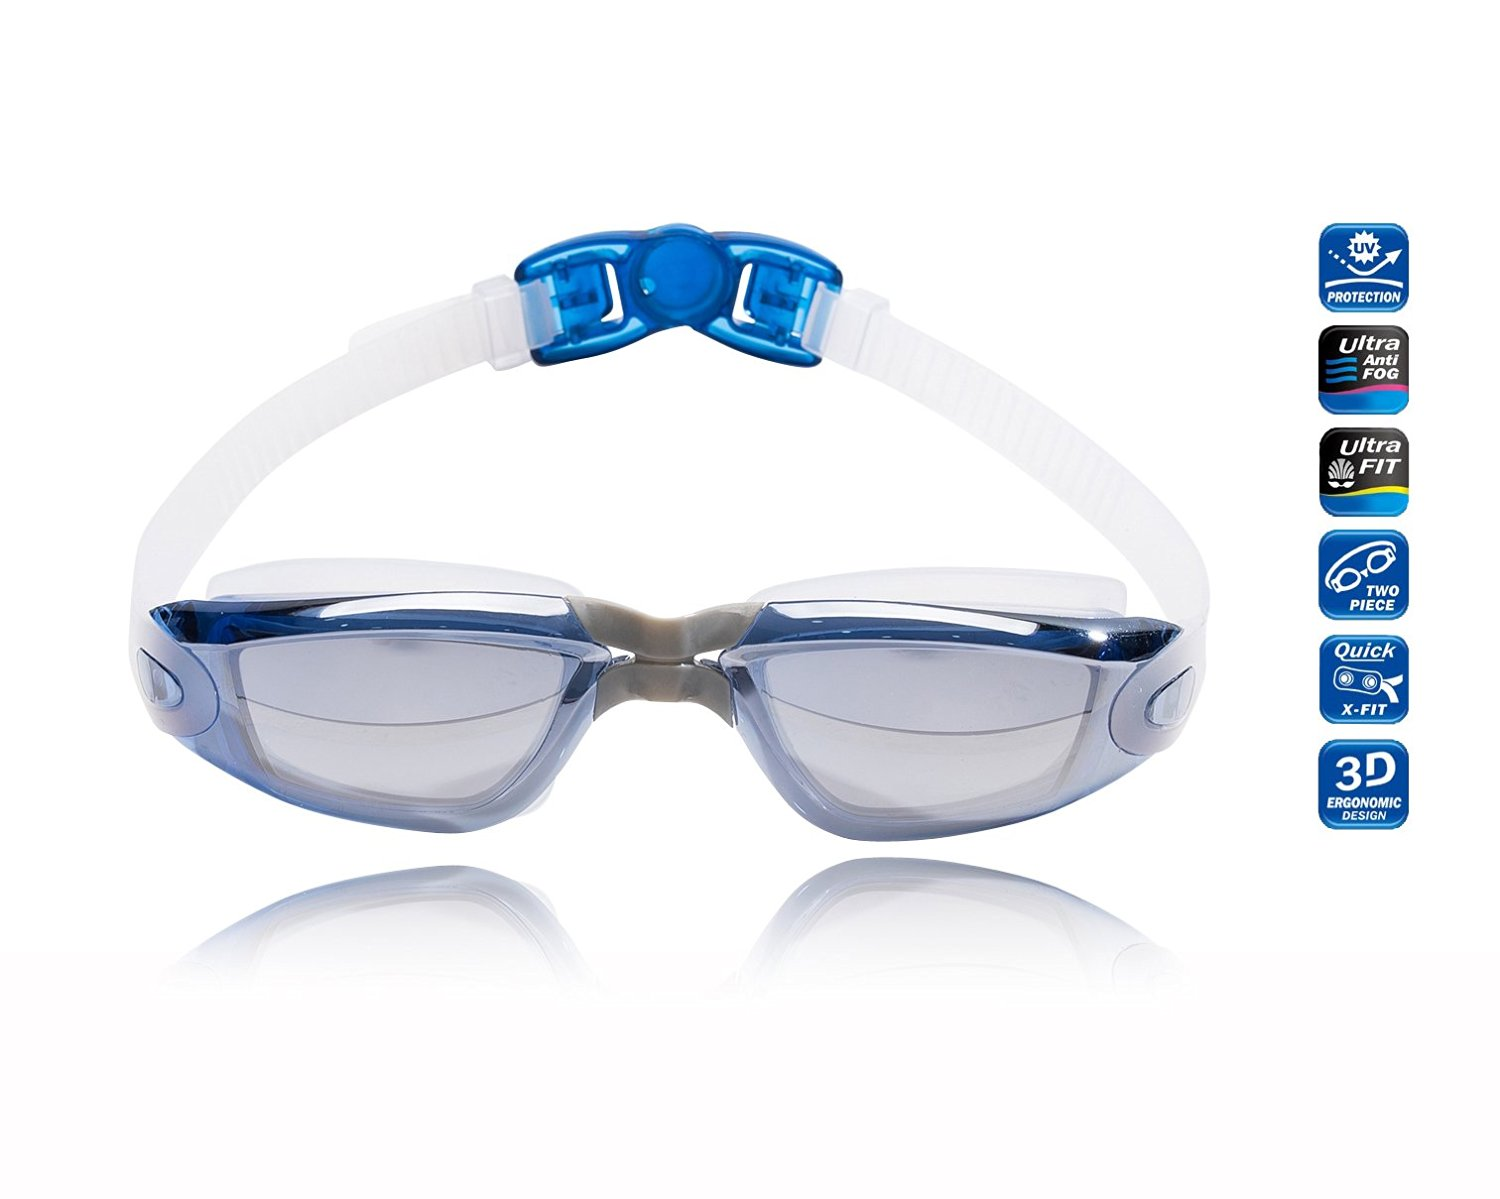 TRIXES Night and Day Vision Anti Glare UV Driving Comfort Safety Glasses